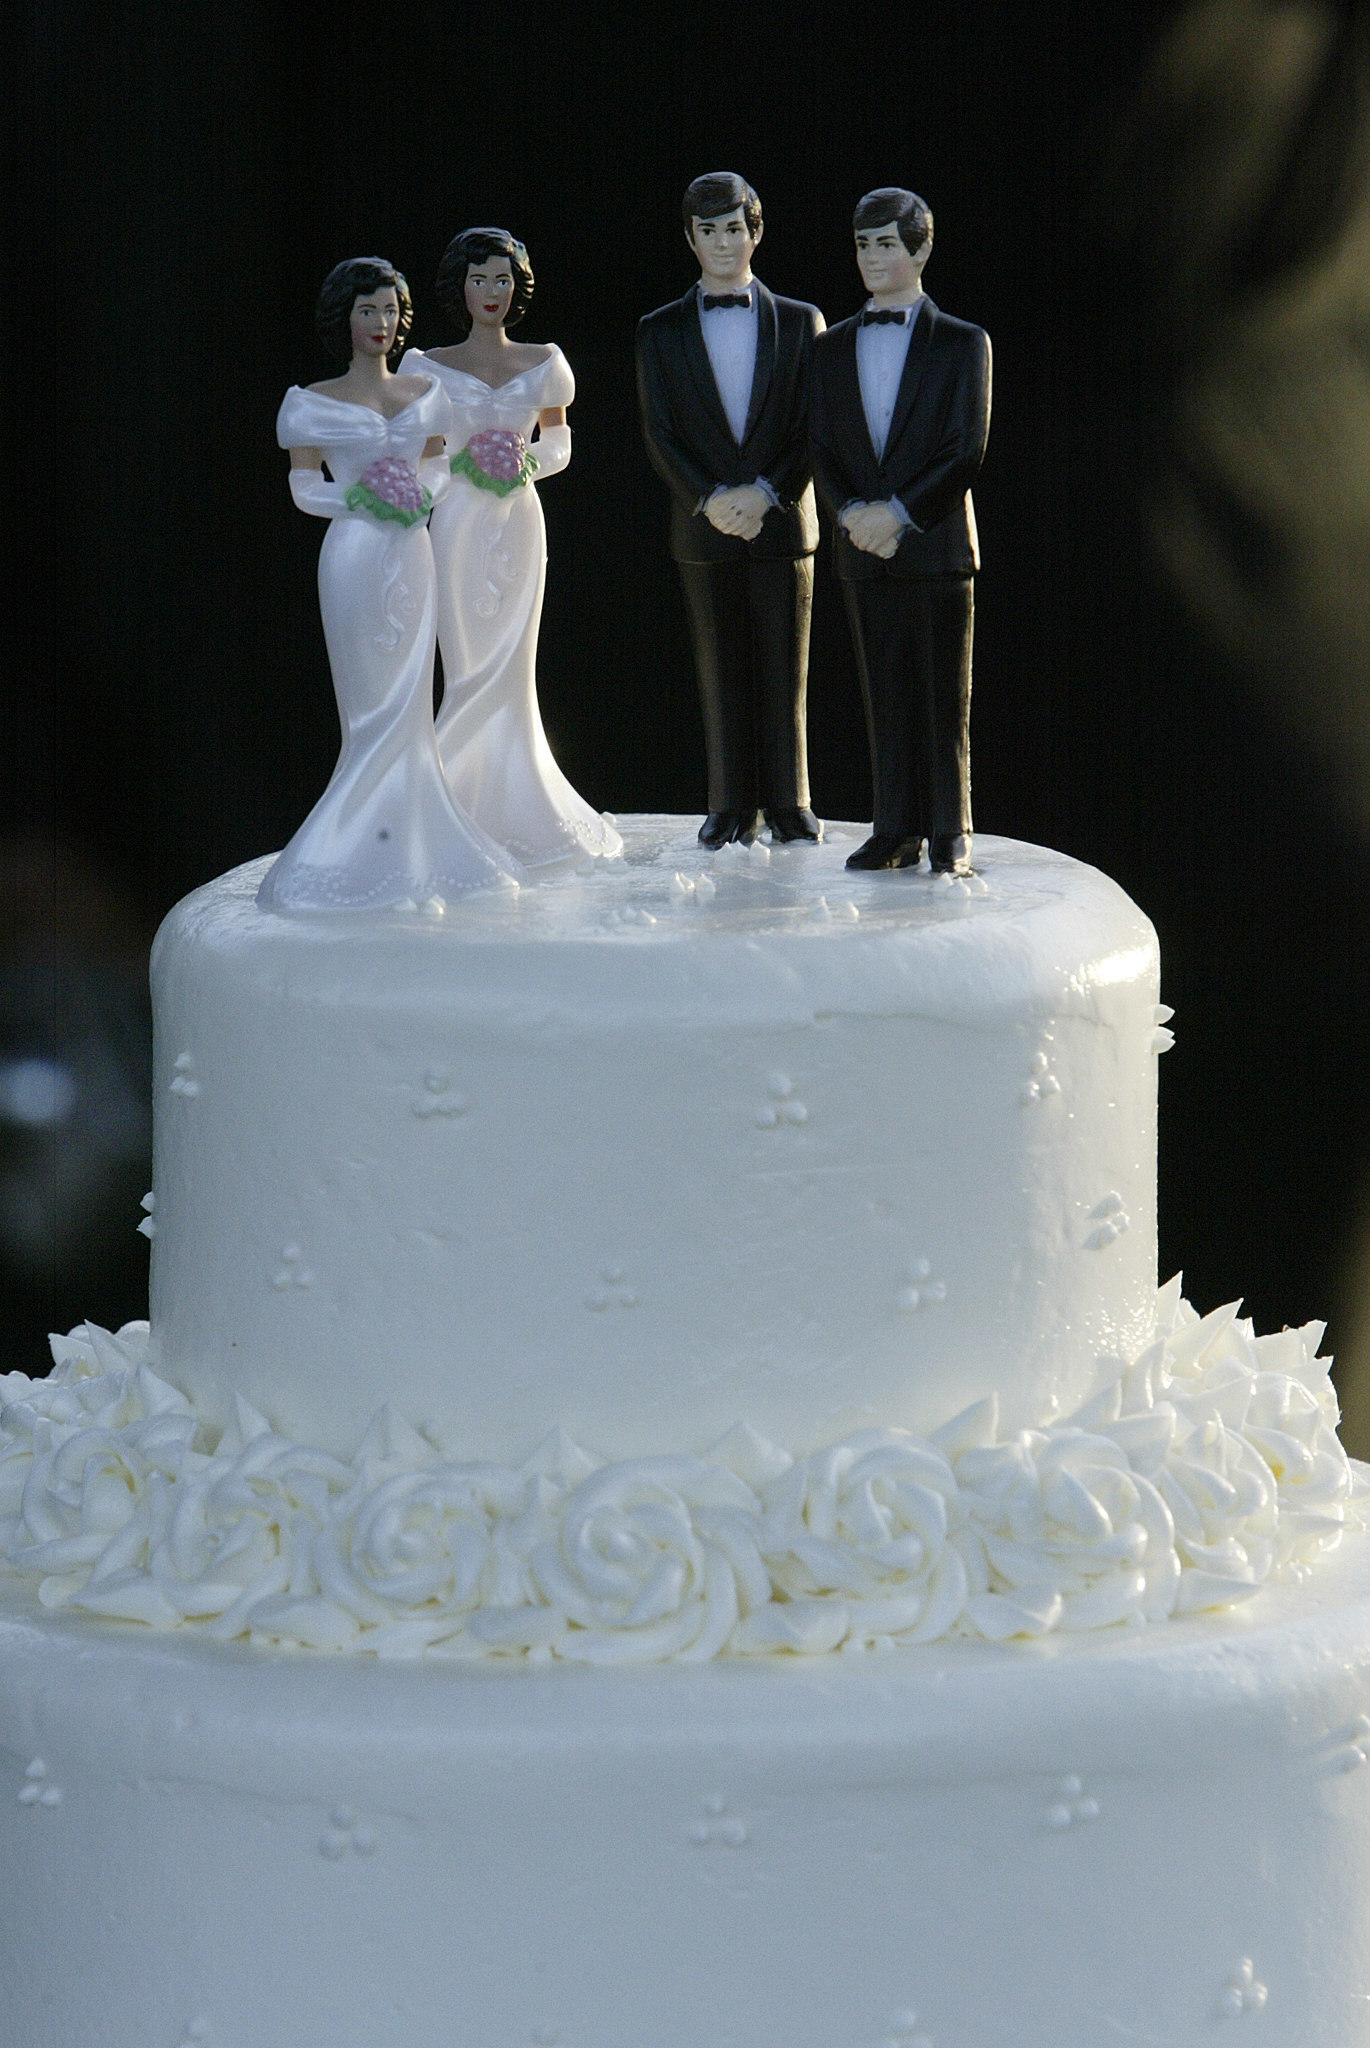 couple wedding cake wedding cake is artistic expression that baker may deny 13016